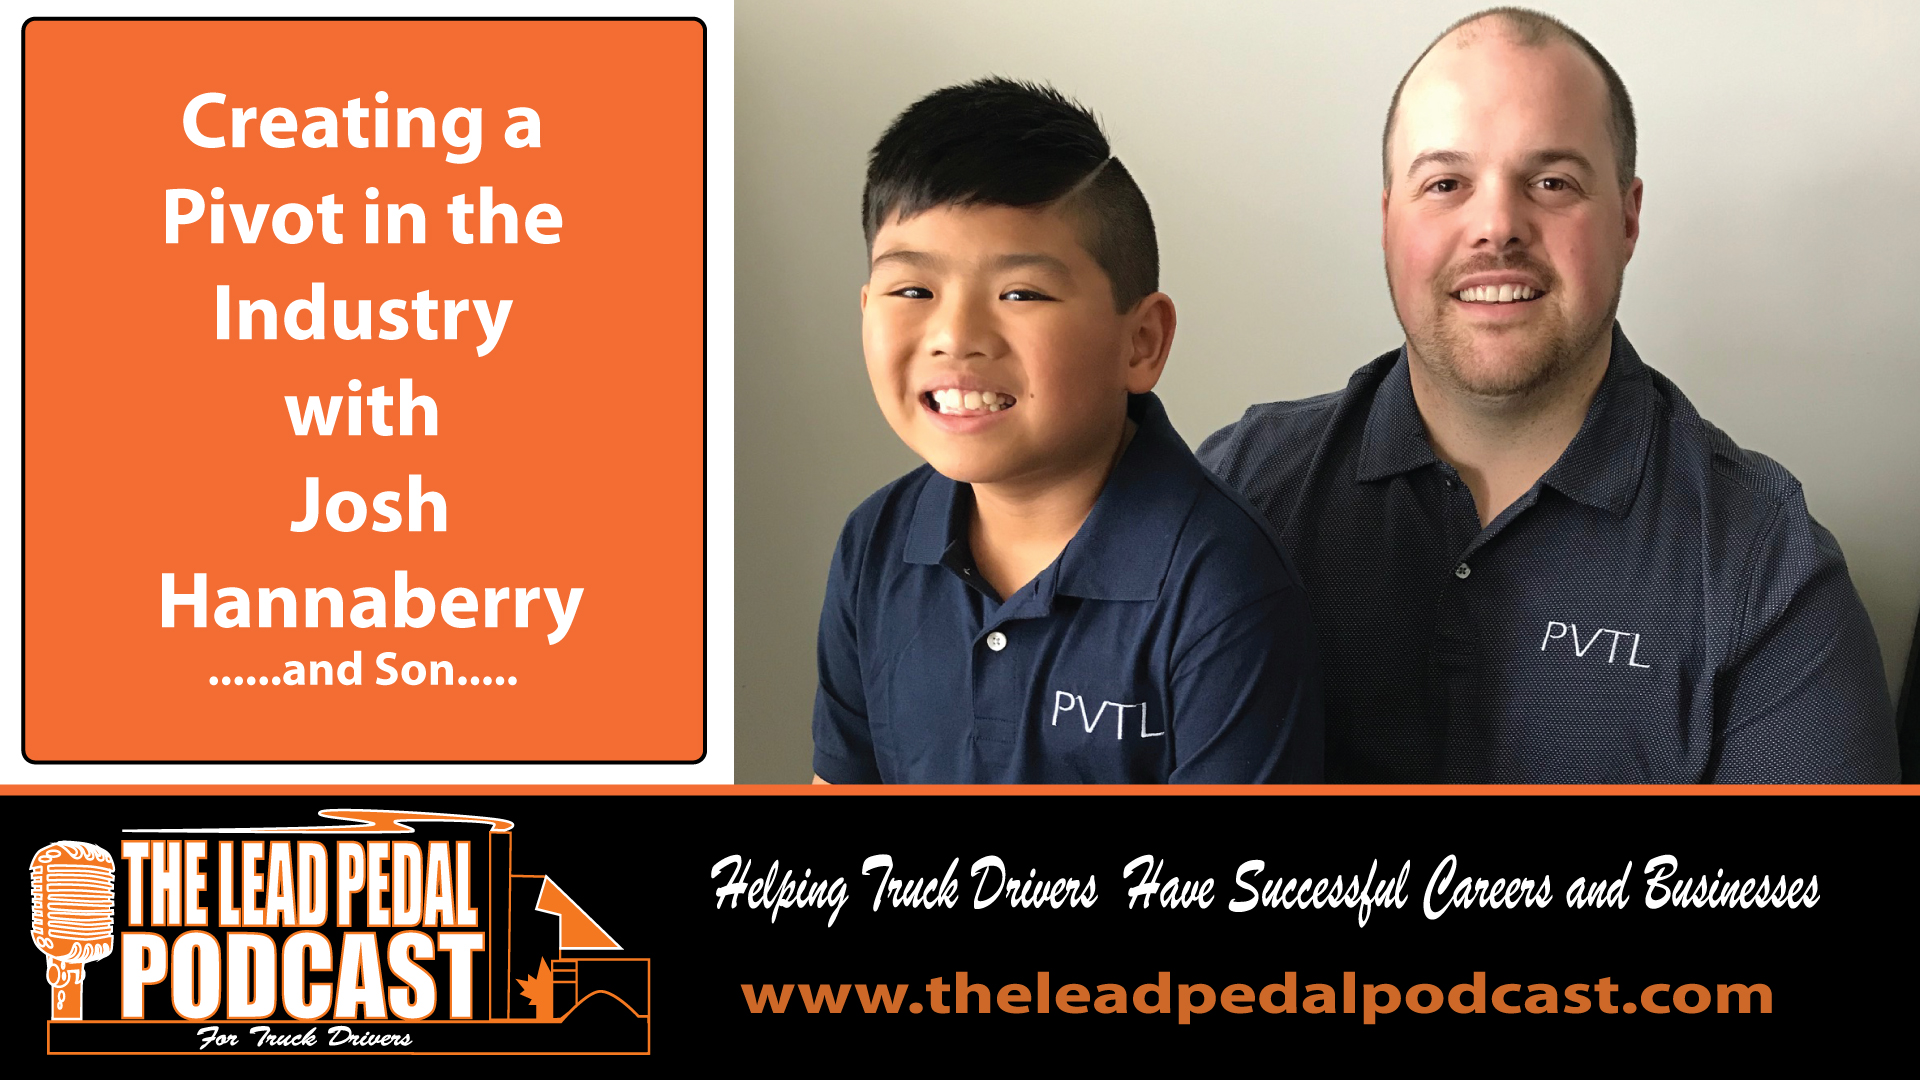 LP652 Pivoting the Trucking Industry with Josh Hannaberry